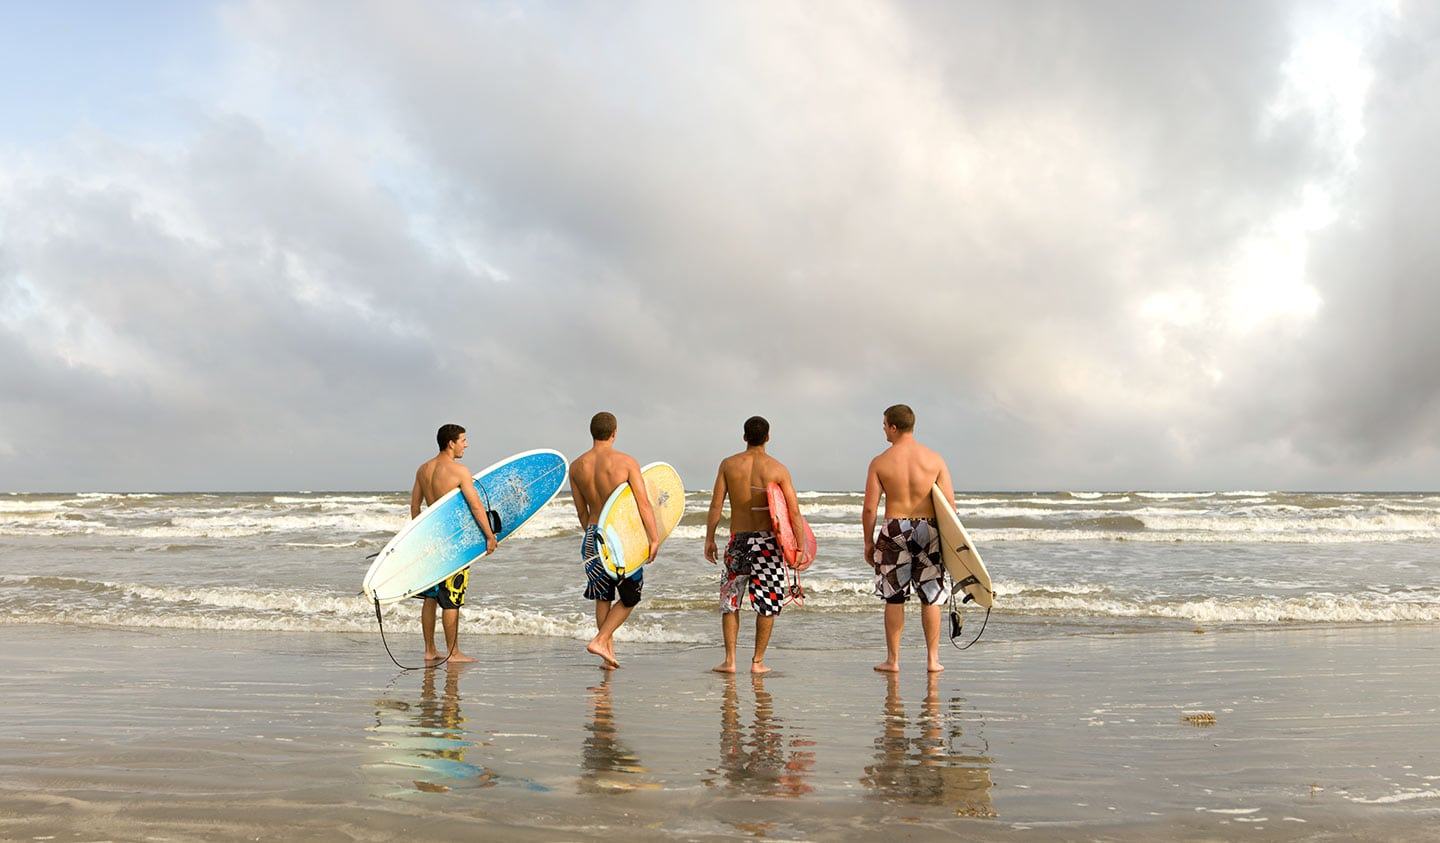 Back Image Four Men Entering Water With Surfboards Cloudy Beach